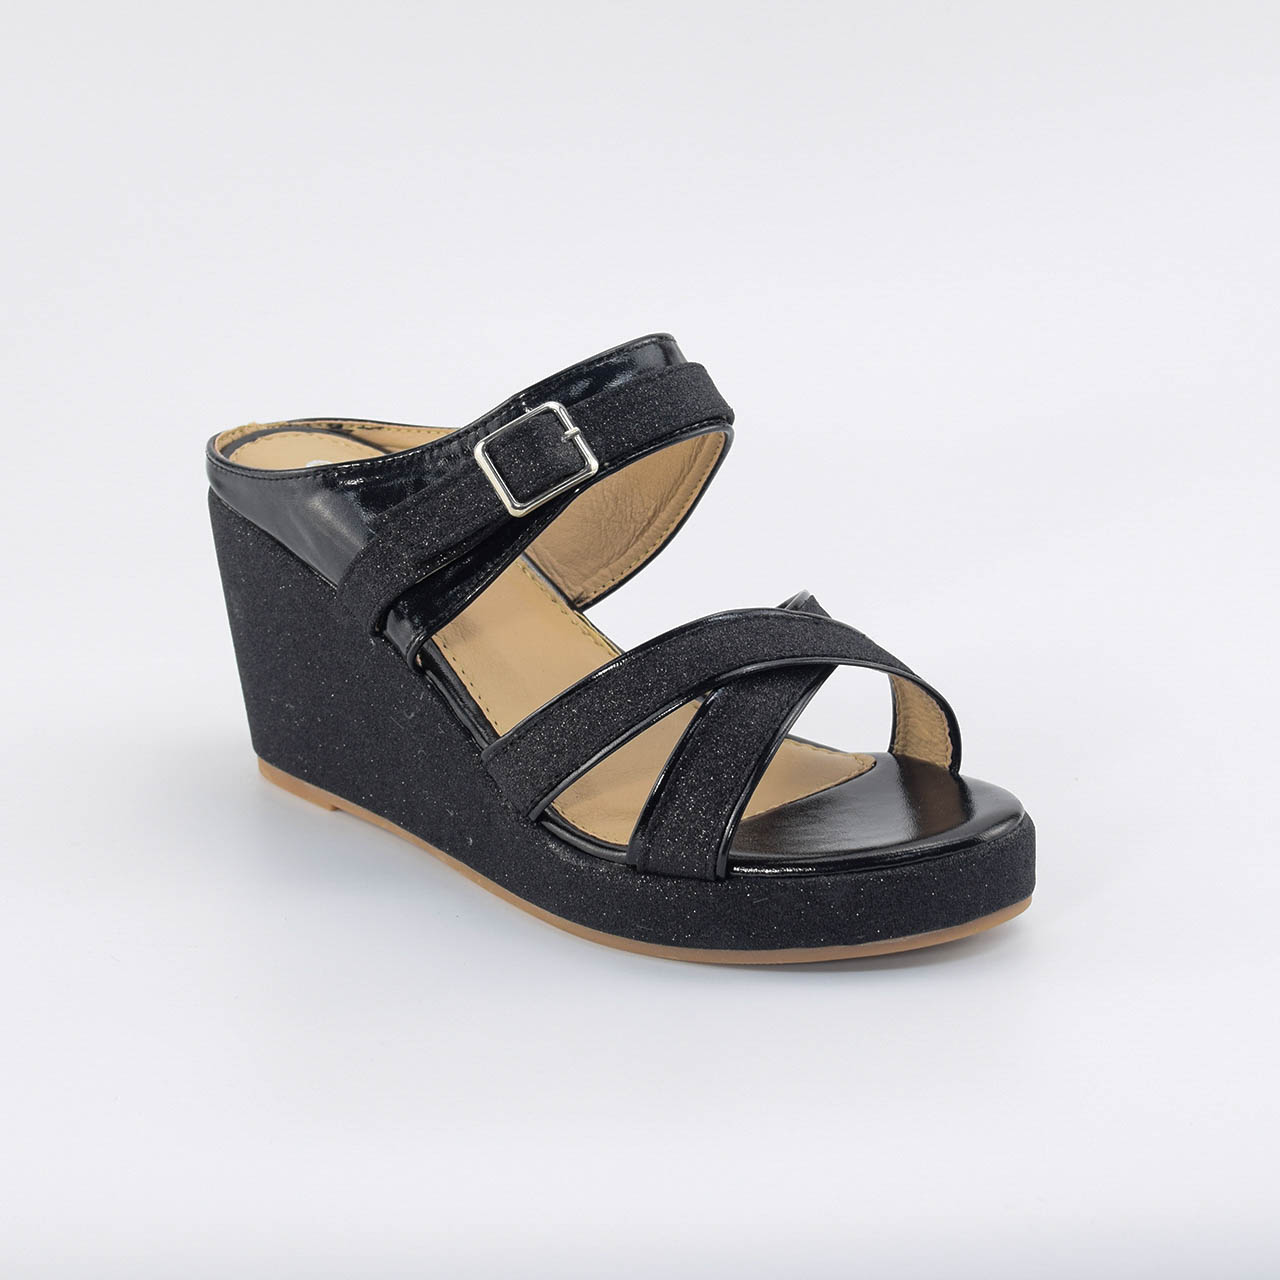 Maeve Cross Wedges in Black